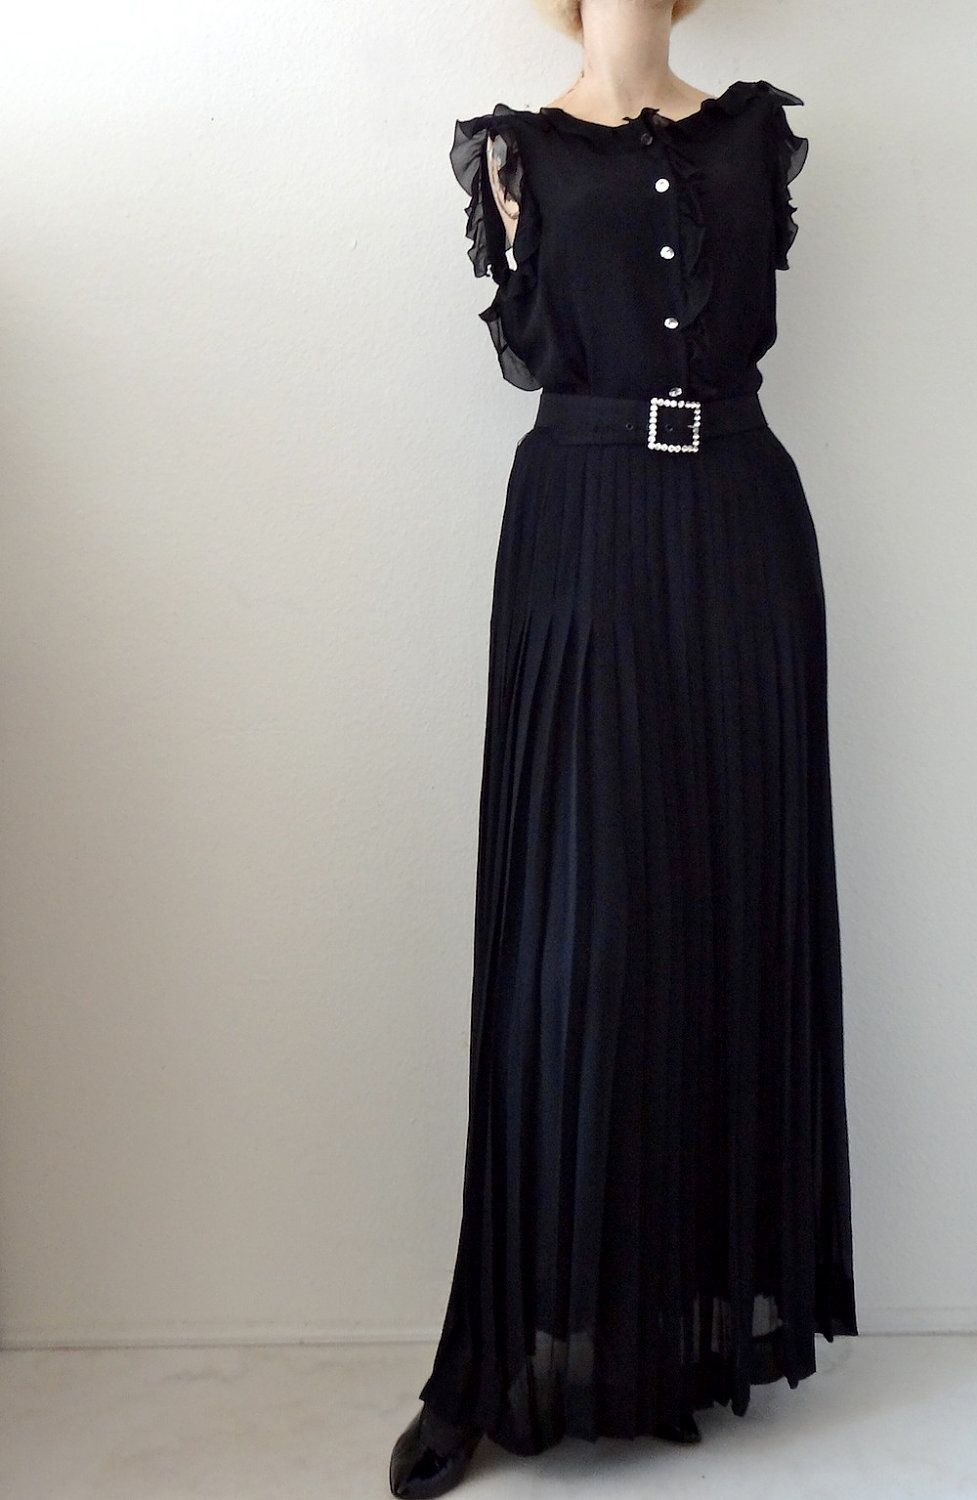 Vintage valentino silk chiffon party dress couture evening gown by